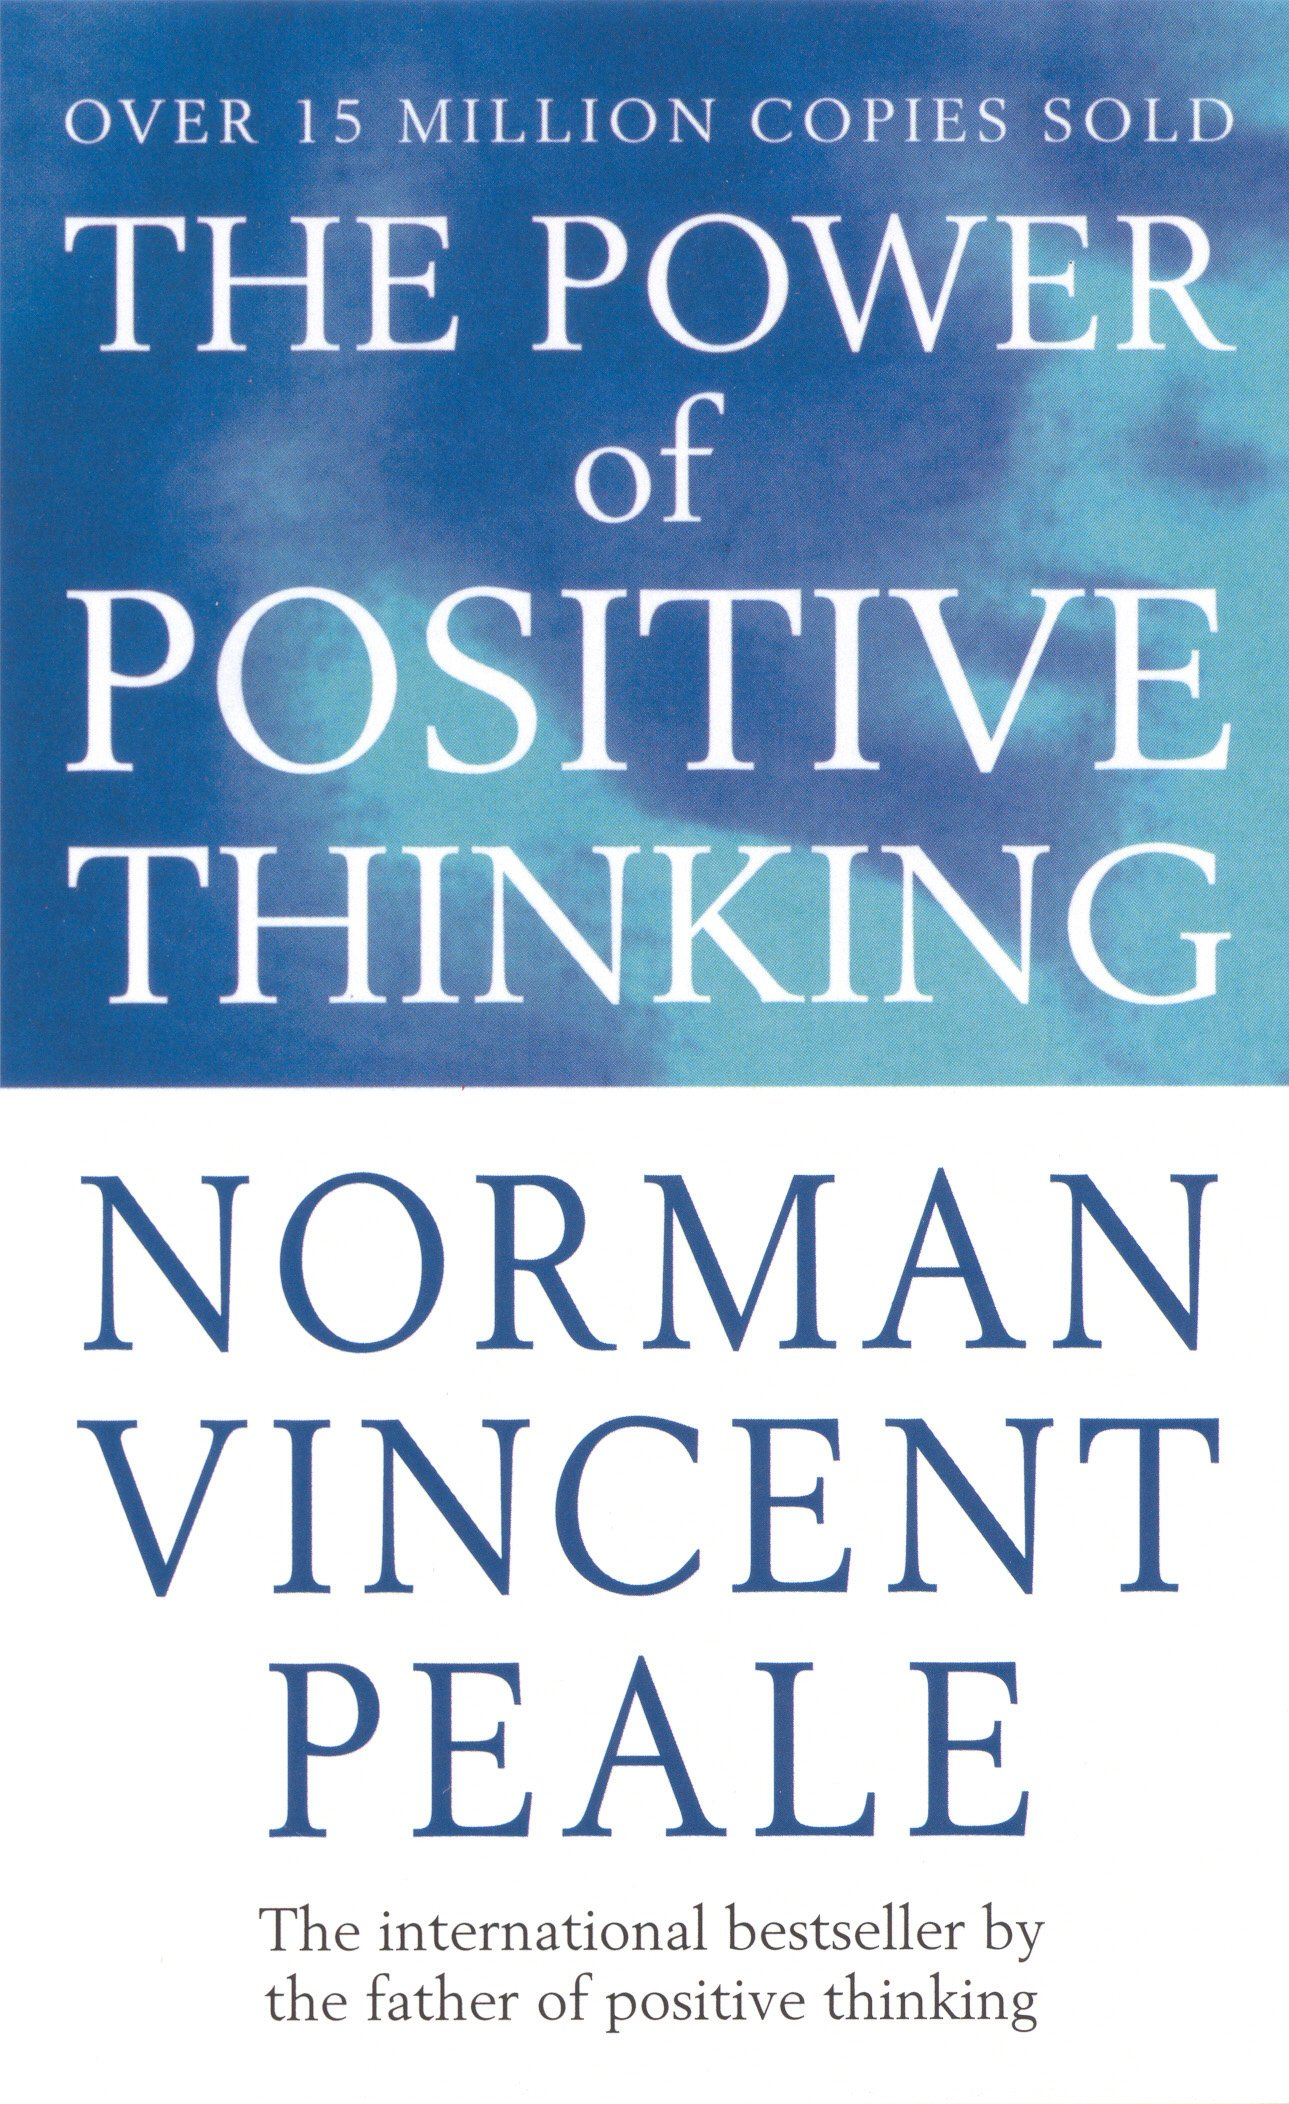 the power of positive thinking co uk norman vincent peale the power of positive thinking co uk norman vincent peale 9780091906382 books